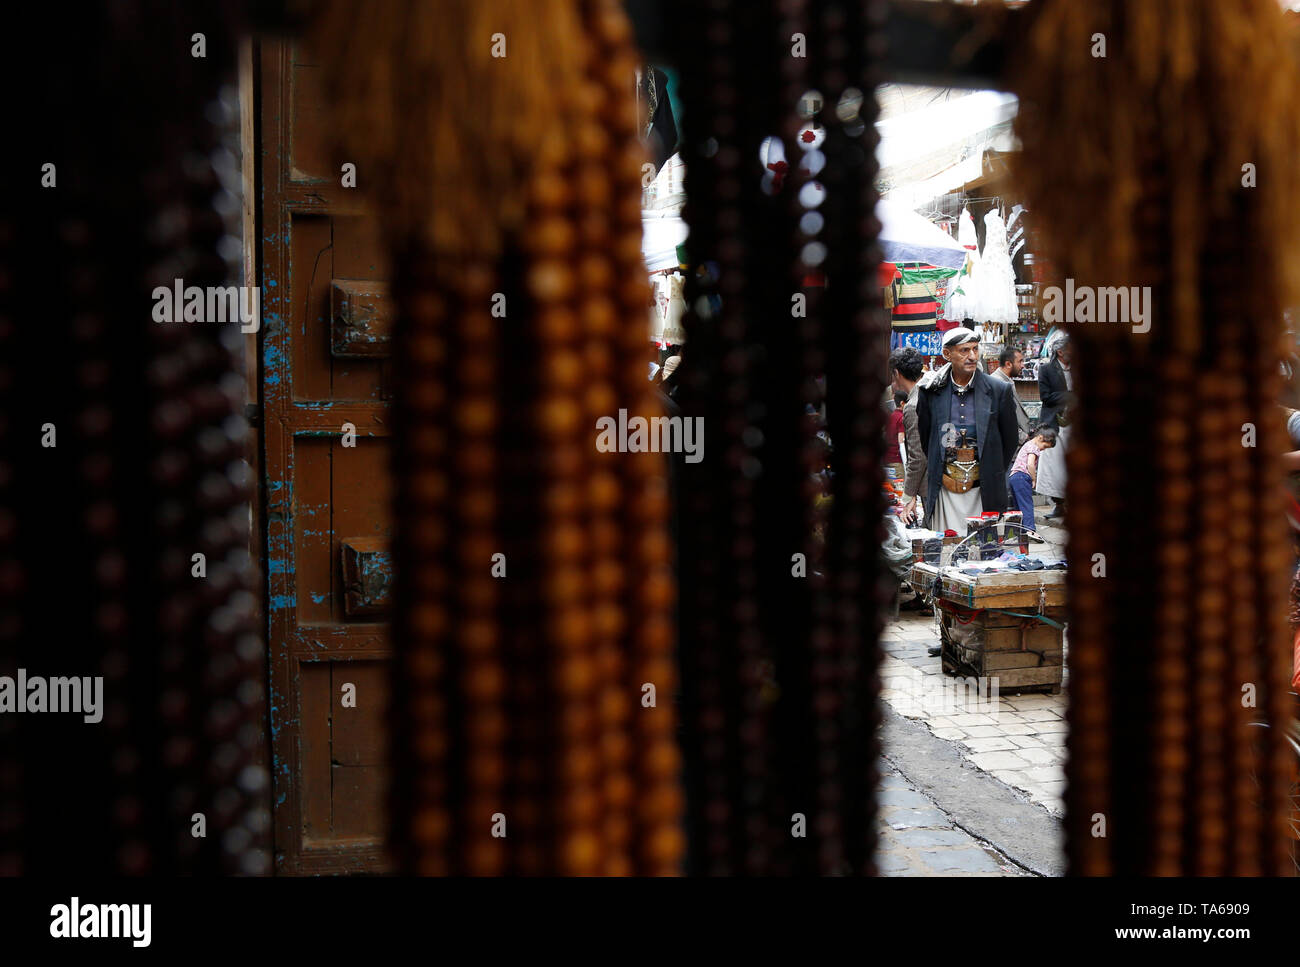 Sanaa, Yemen. 22nd May, 2019. A Yemeni man is seen through rosaries displayed for sale during the Muslim holy month of Ramadan in Sanaa, Yemen, on May 22, 2019. Rosary, or Tesbih, is a small string of prayer beads that is carried by many Yemeni men during the holy month of Ramadan. Credit: Mohammed Mohammed/Xinhua/Alamy Live News - Stock Image